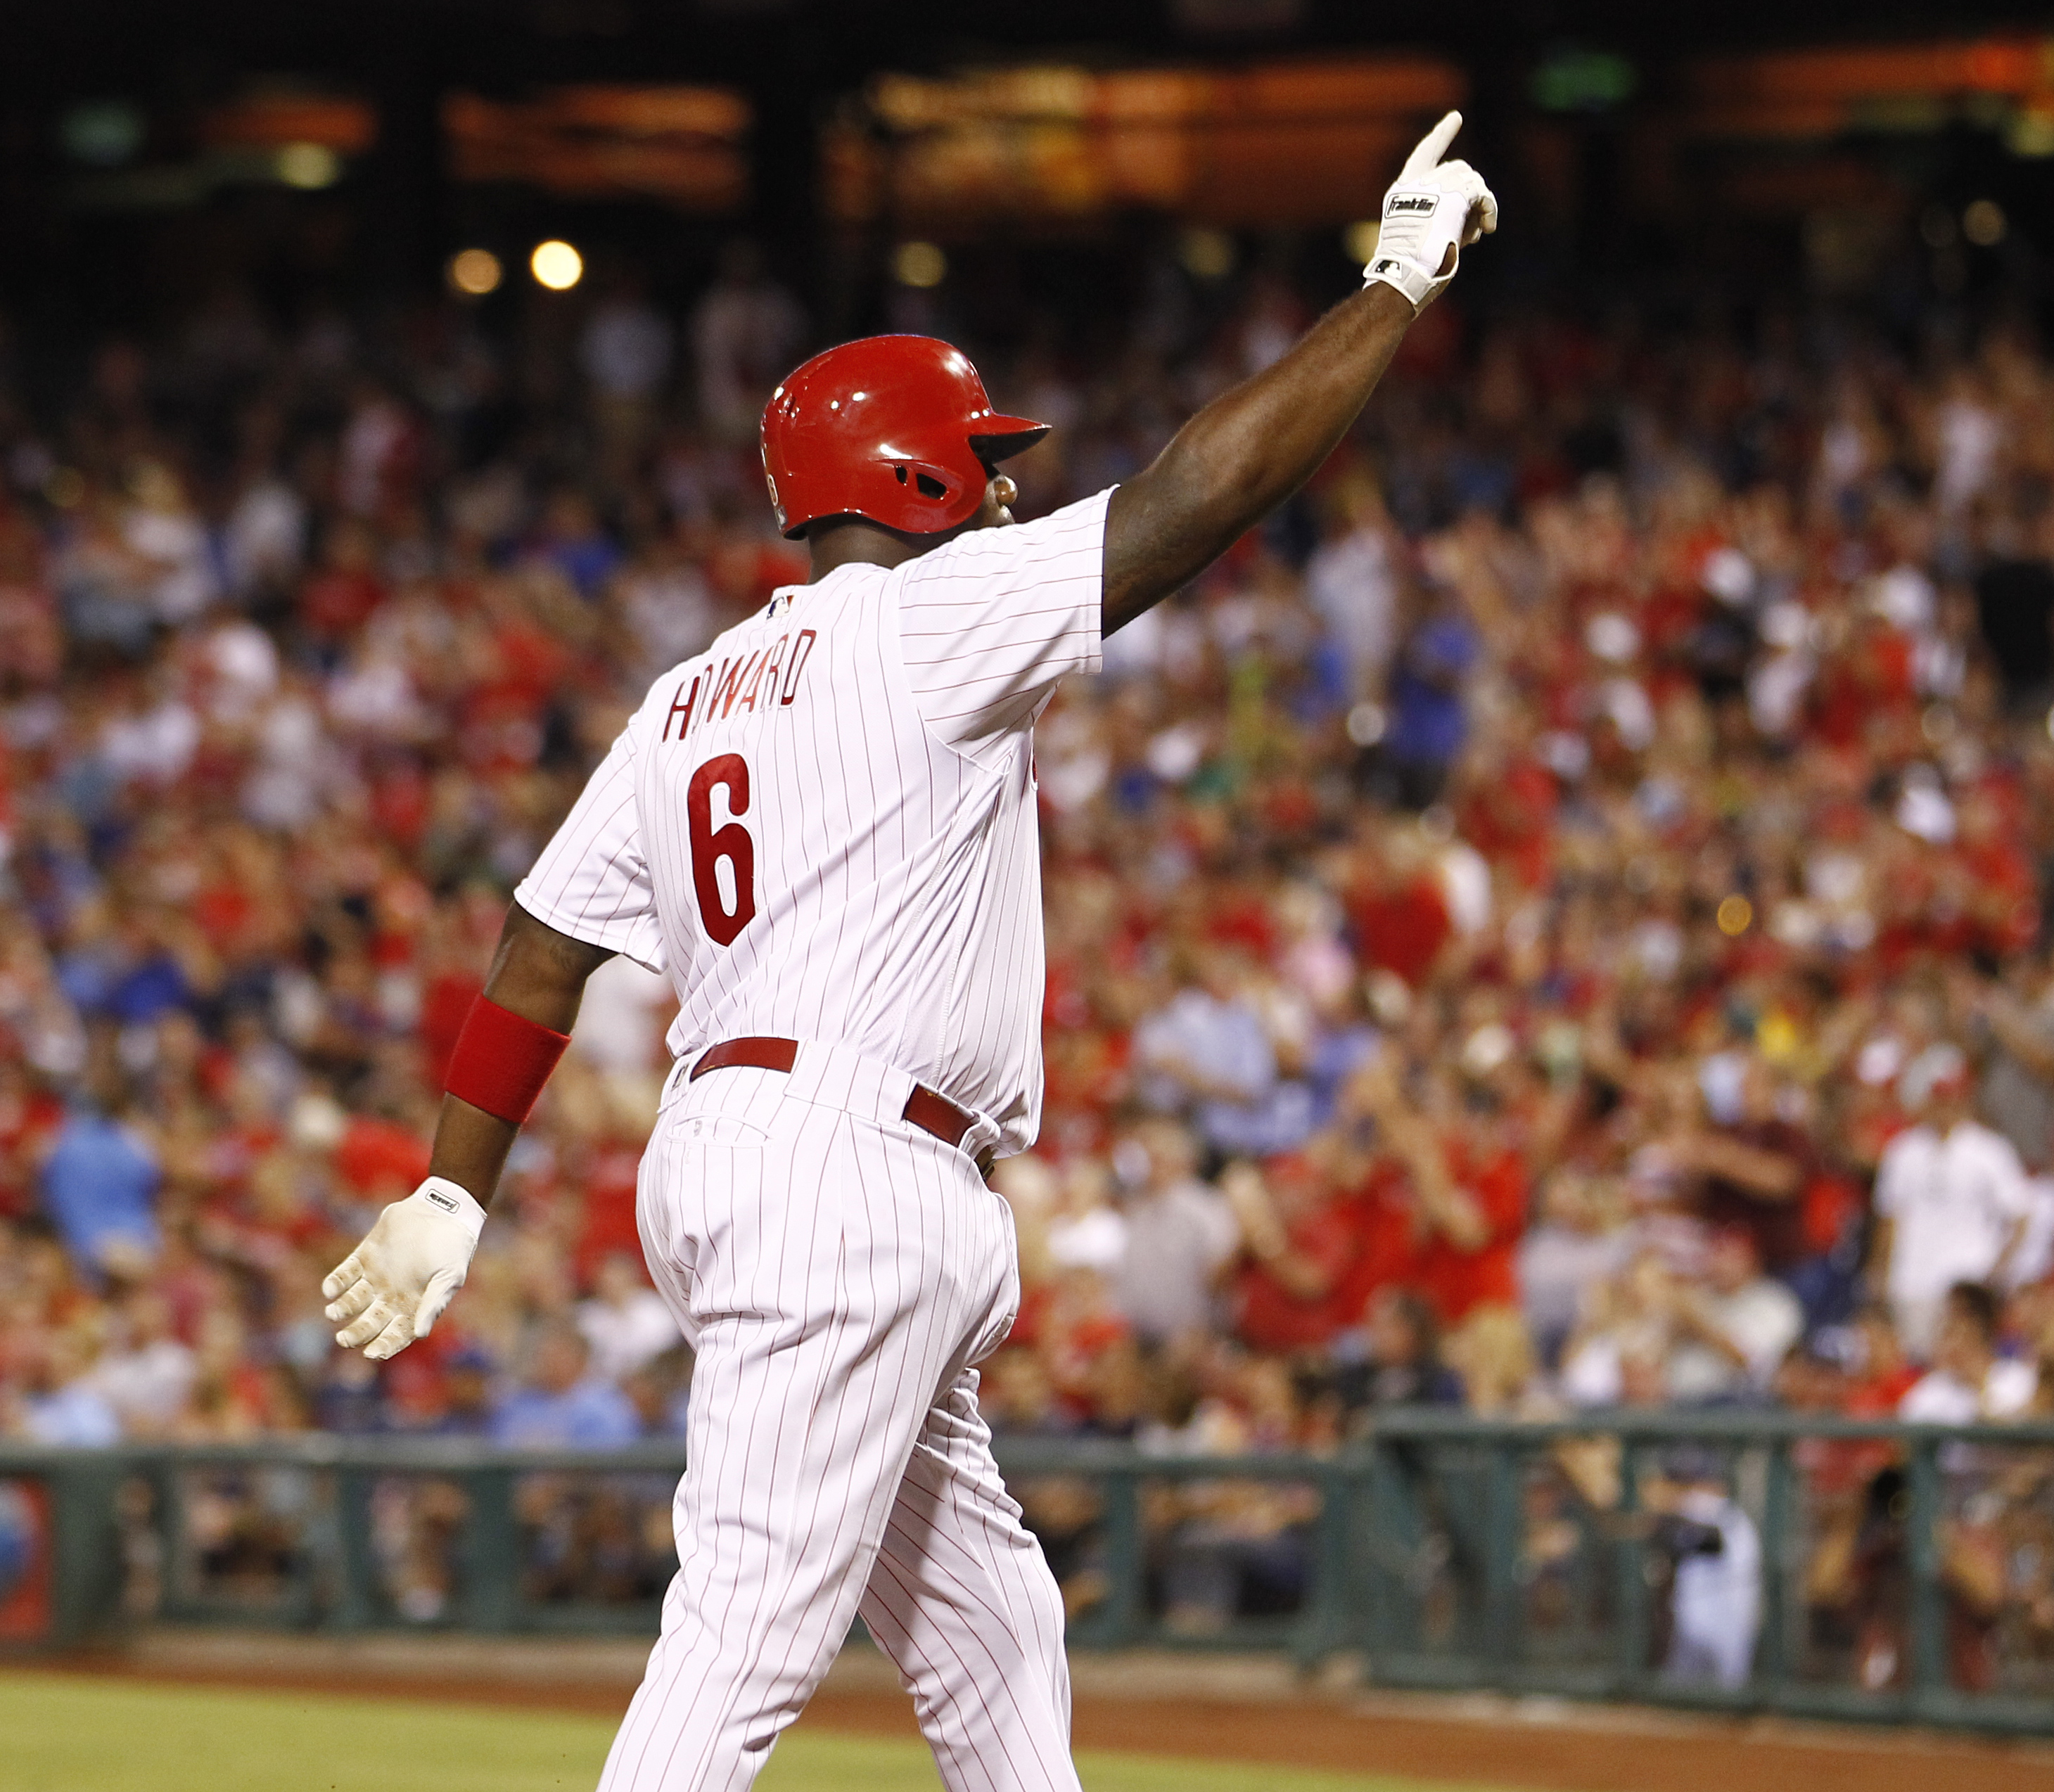 Philadelphia Phillies' Ryan Howard acknowledges fans after hitting a solo home run during the fourth inning of a baseball game against the Los Angeles Dodgers, Thursday, Aug. 18, 2016, in Philadelphia. (AP Photo/Tom Mihalek)